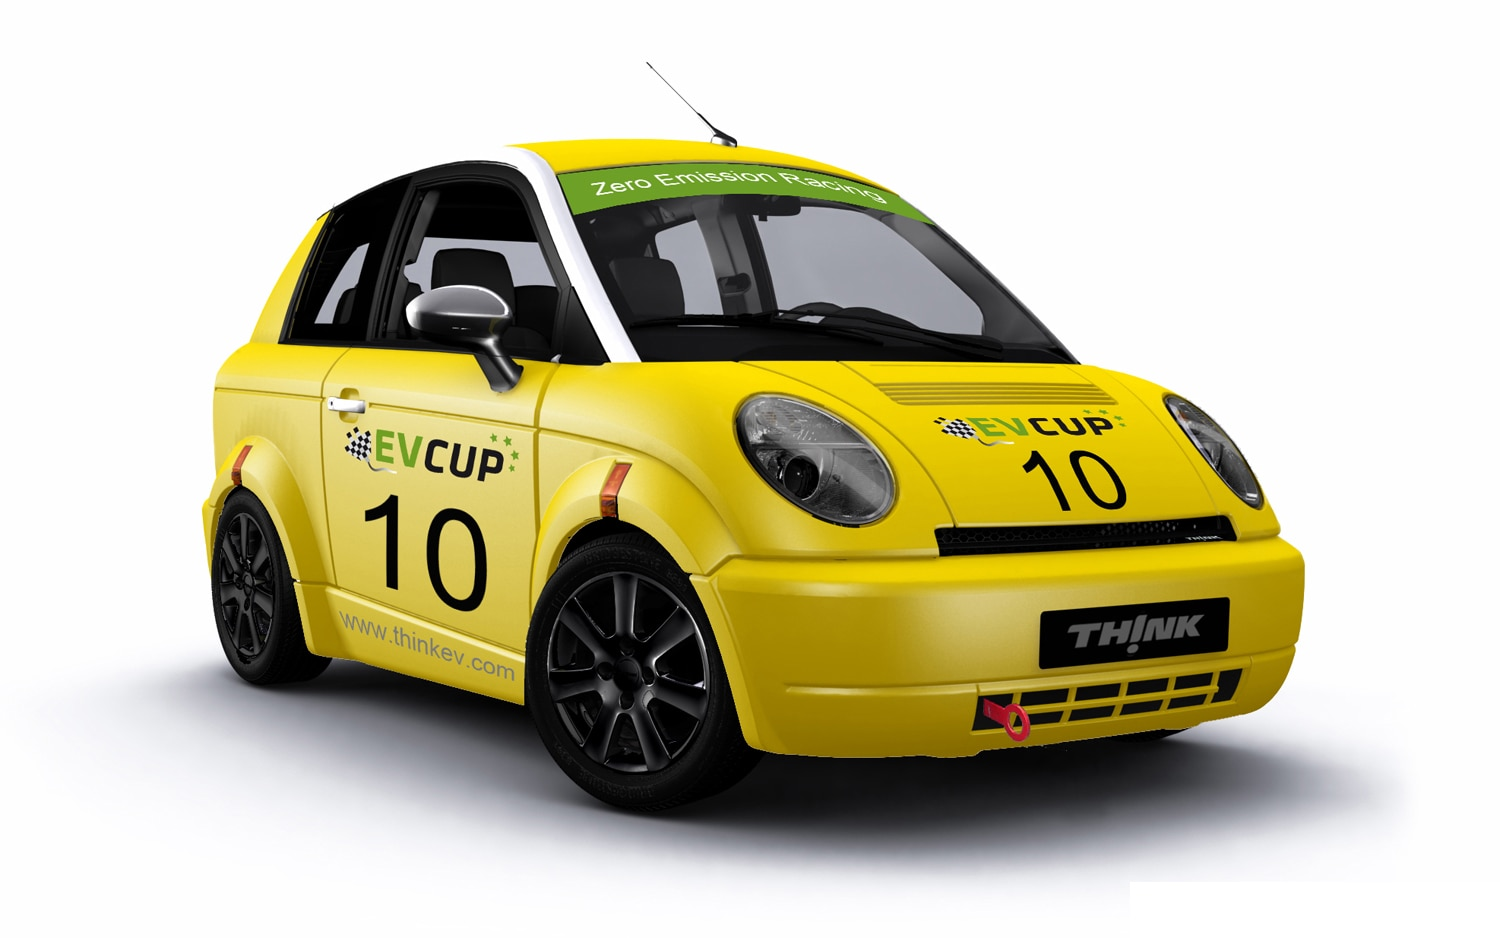 Think City Ev Cup Race Car Front Three Quarter1